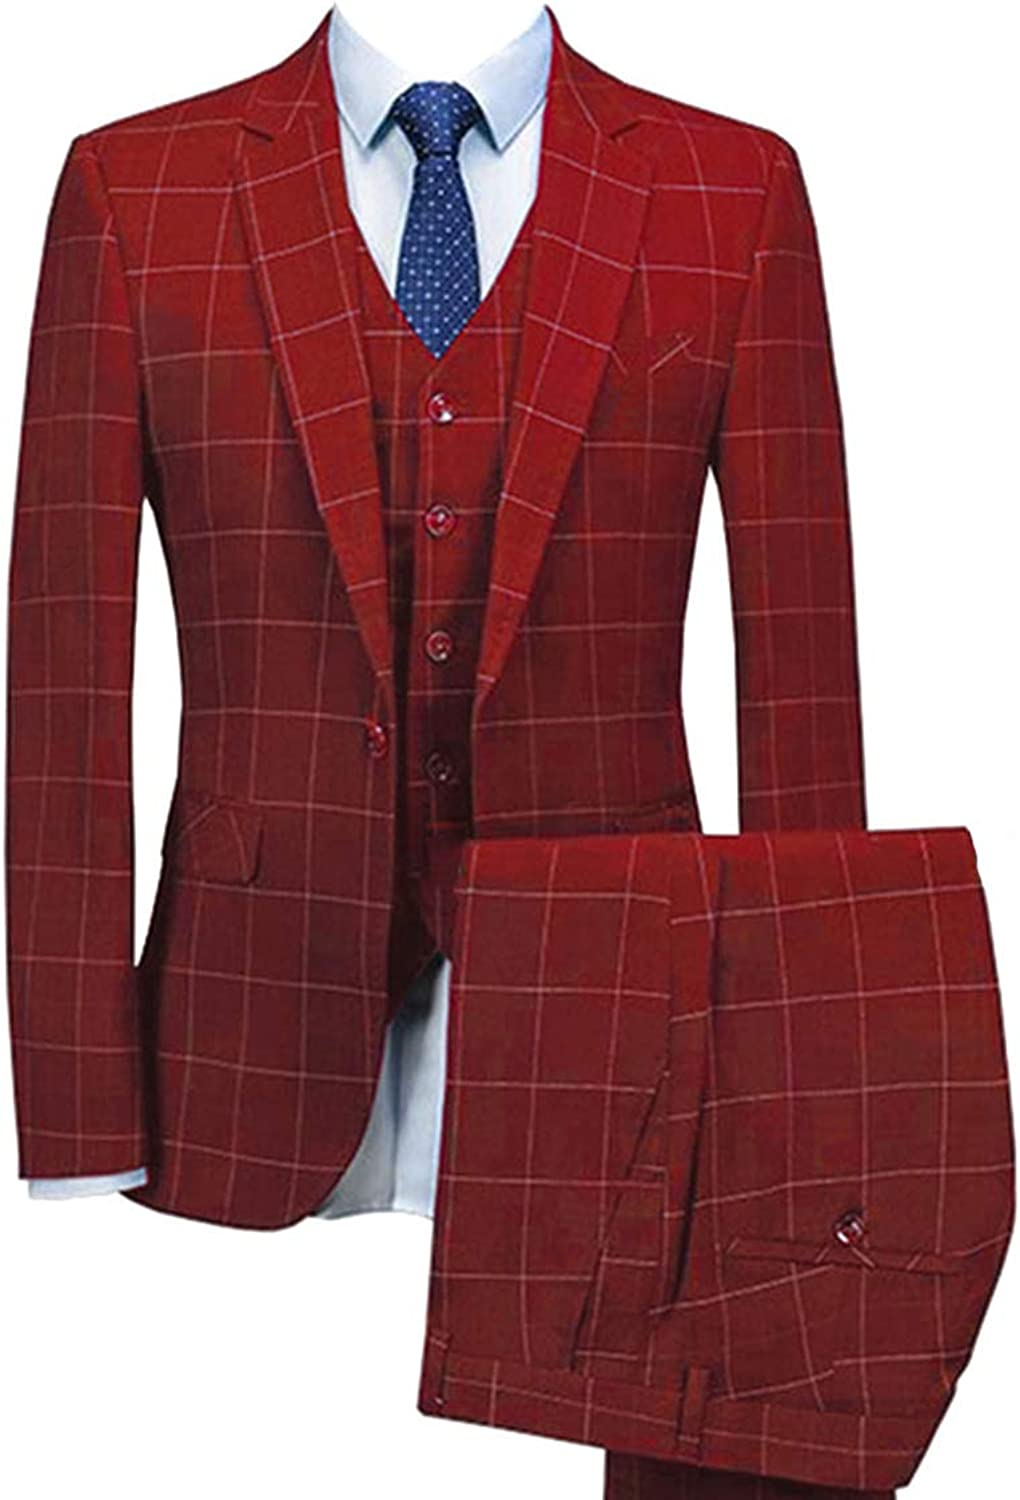 HOTK Men's Suits Handsome Notch Lapel Safety and trust Pieces Max 68% OFF Plaid 3 Bus Wedding